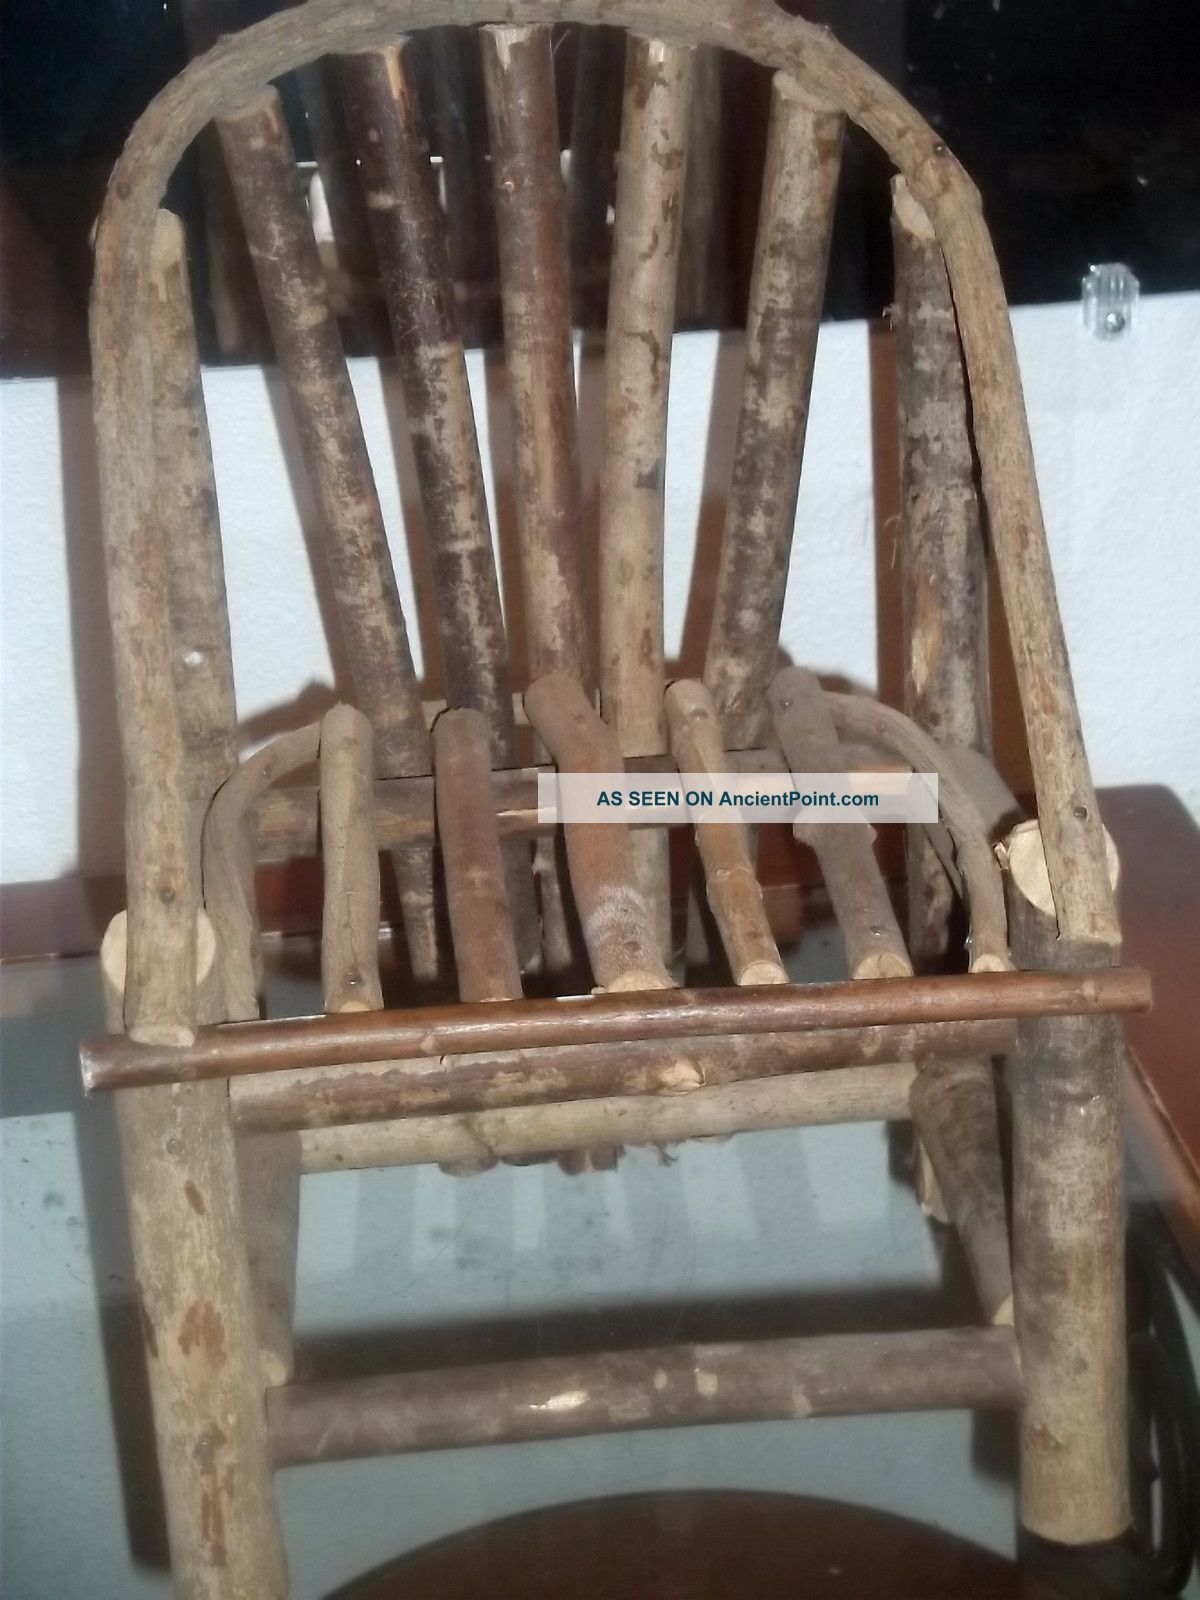 Marvelous photograph of Small Home Made Wood Chair Made From Limbsm For Doll Or Just Looks  with #7F674C color and 1200x1600 pixels